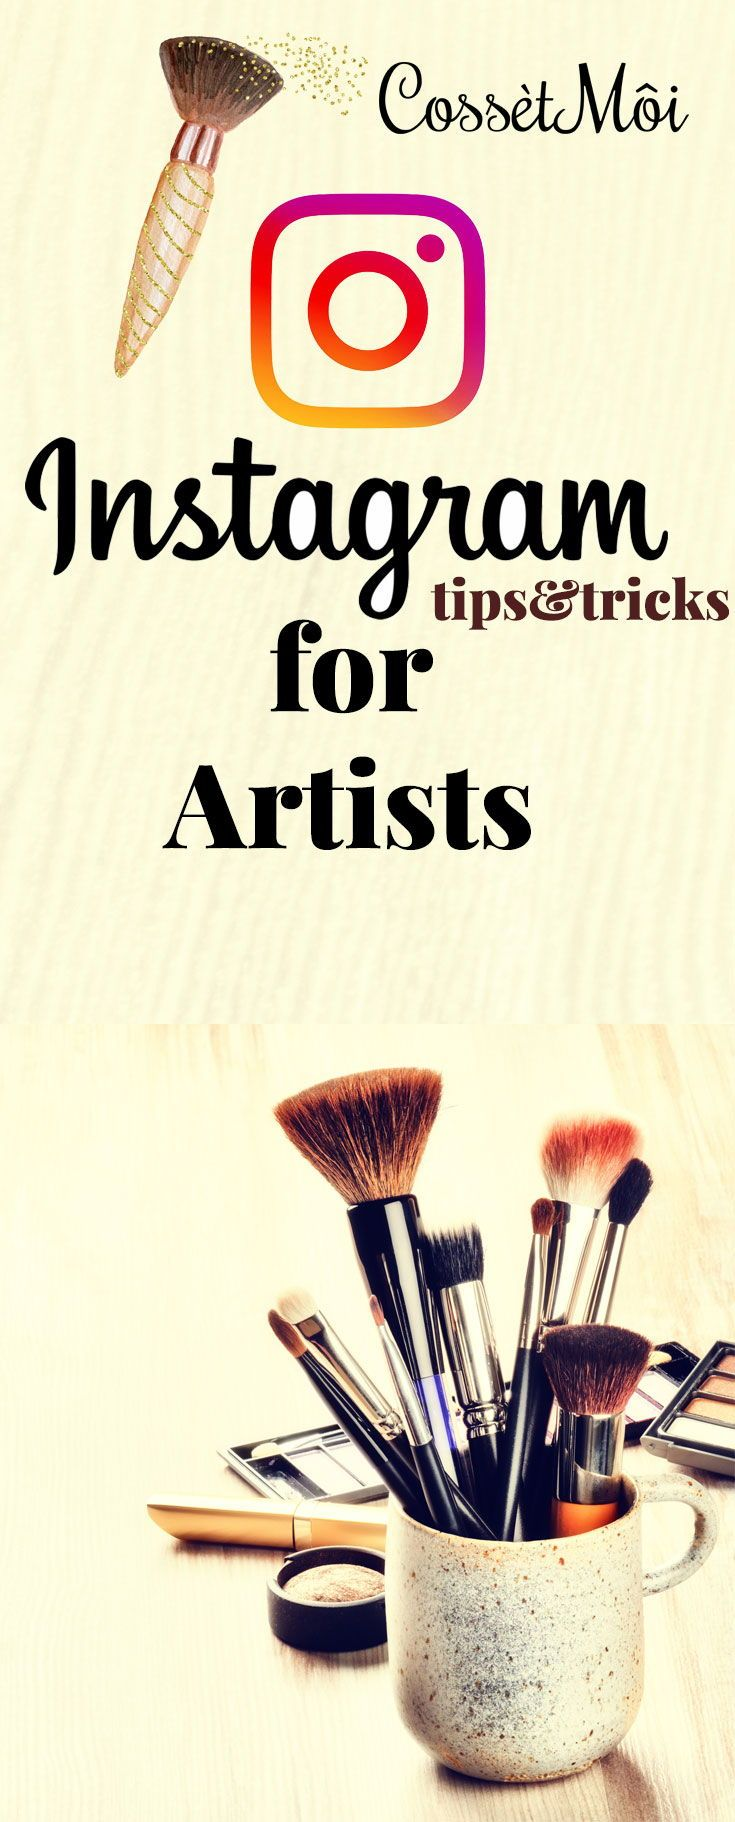 5 Steps to Build Your Reputation as a Makeup Artist on Instagram